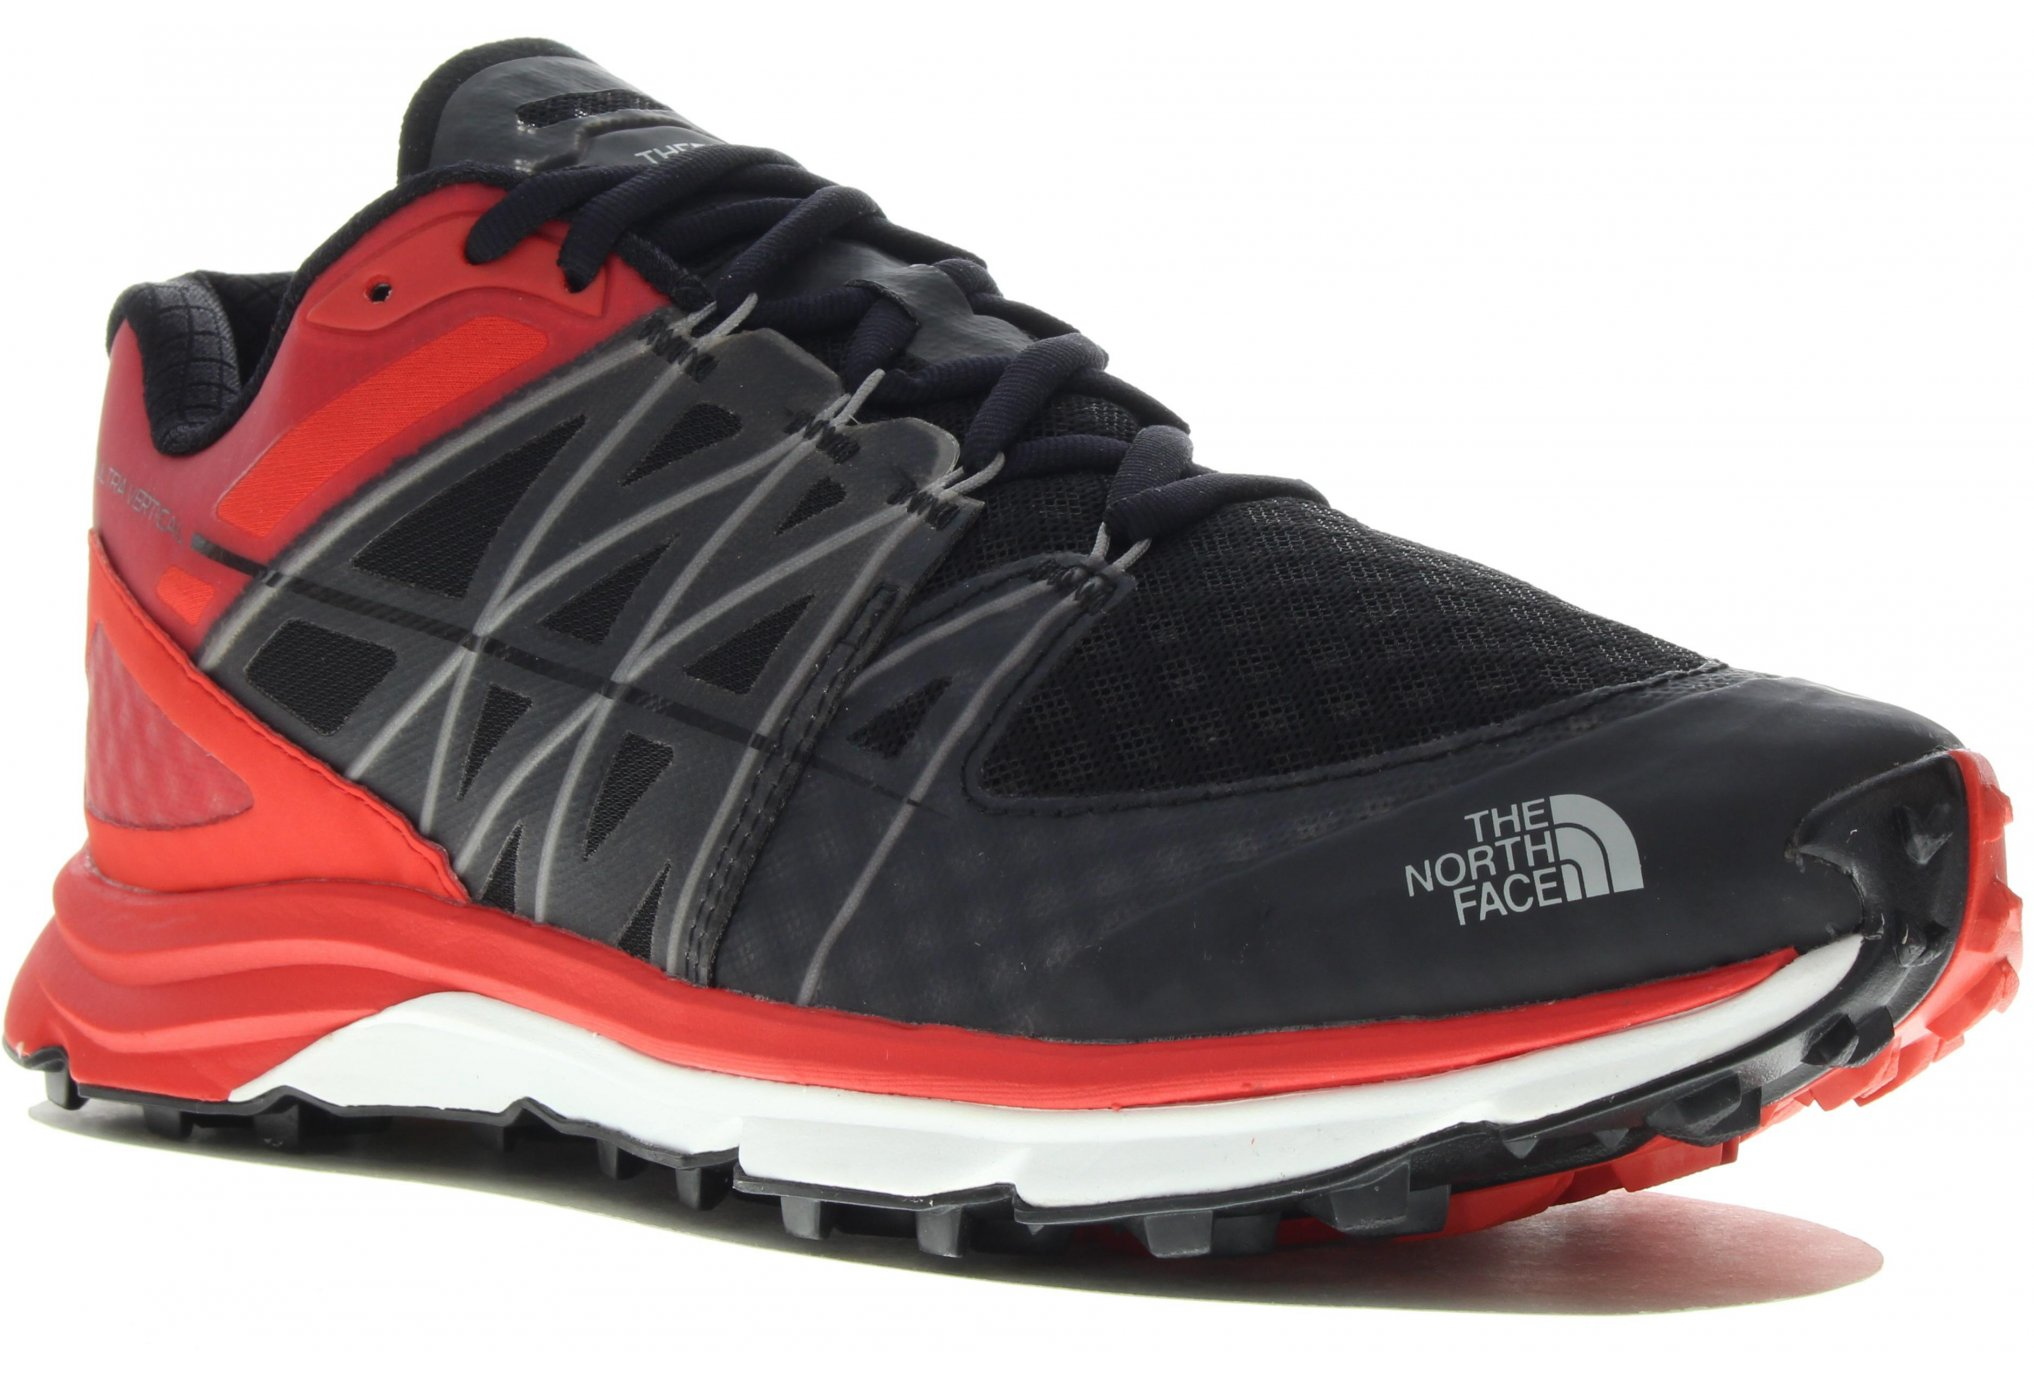 The North Face Ultra Vertical déstockage running